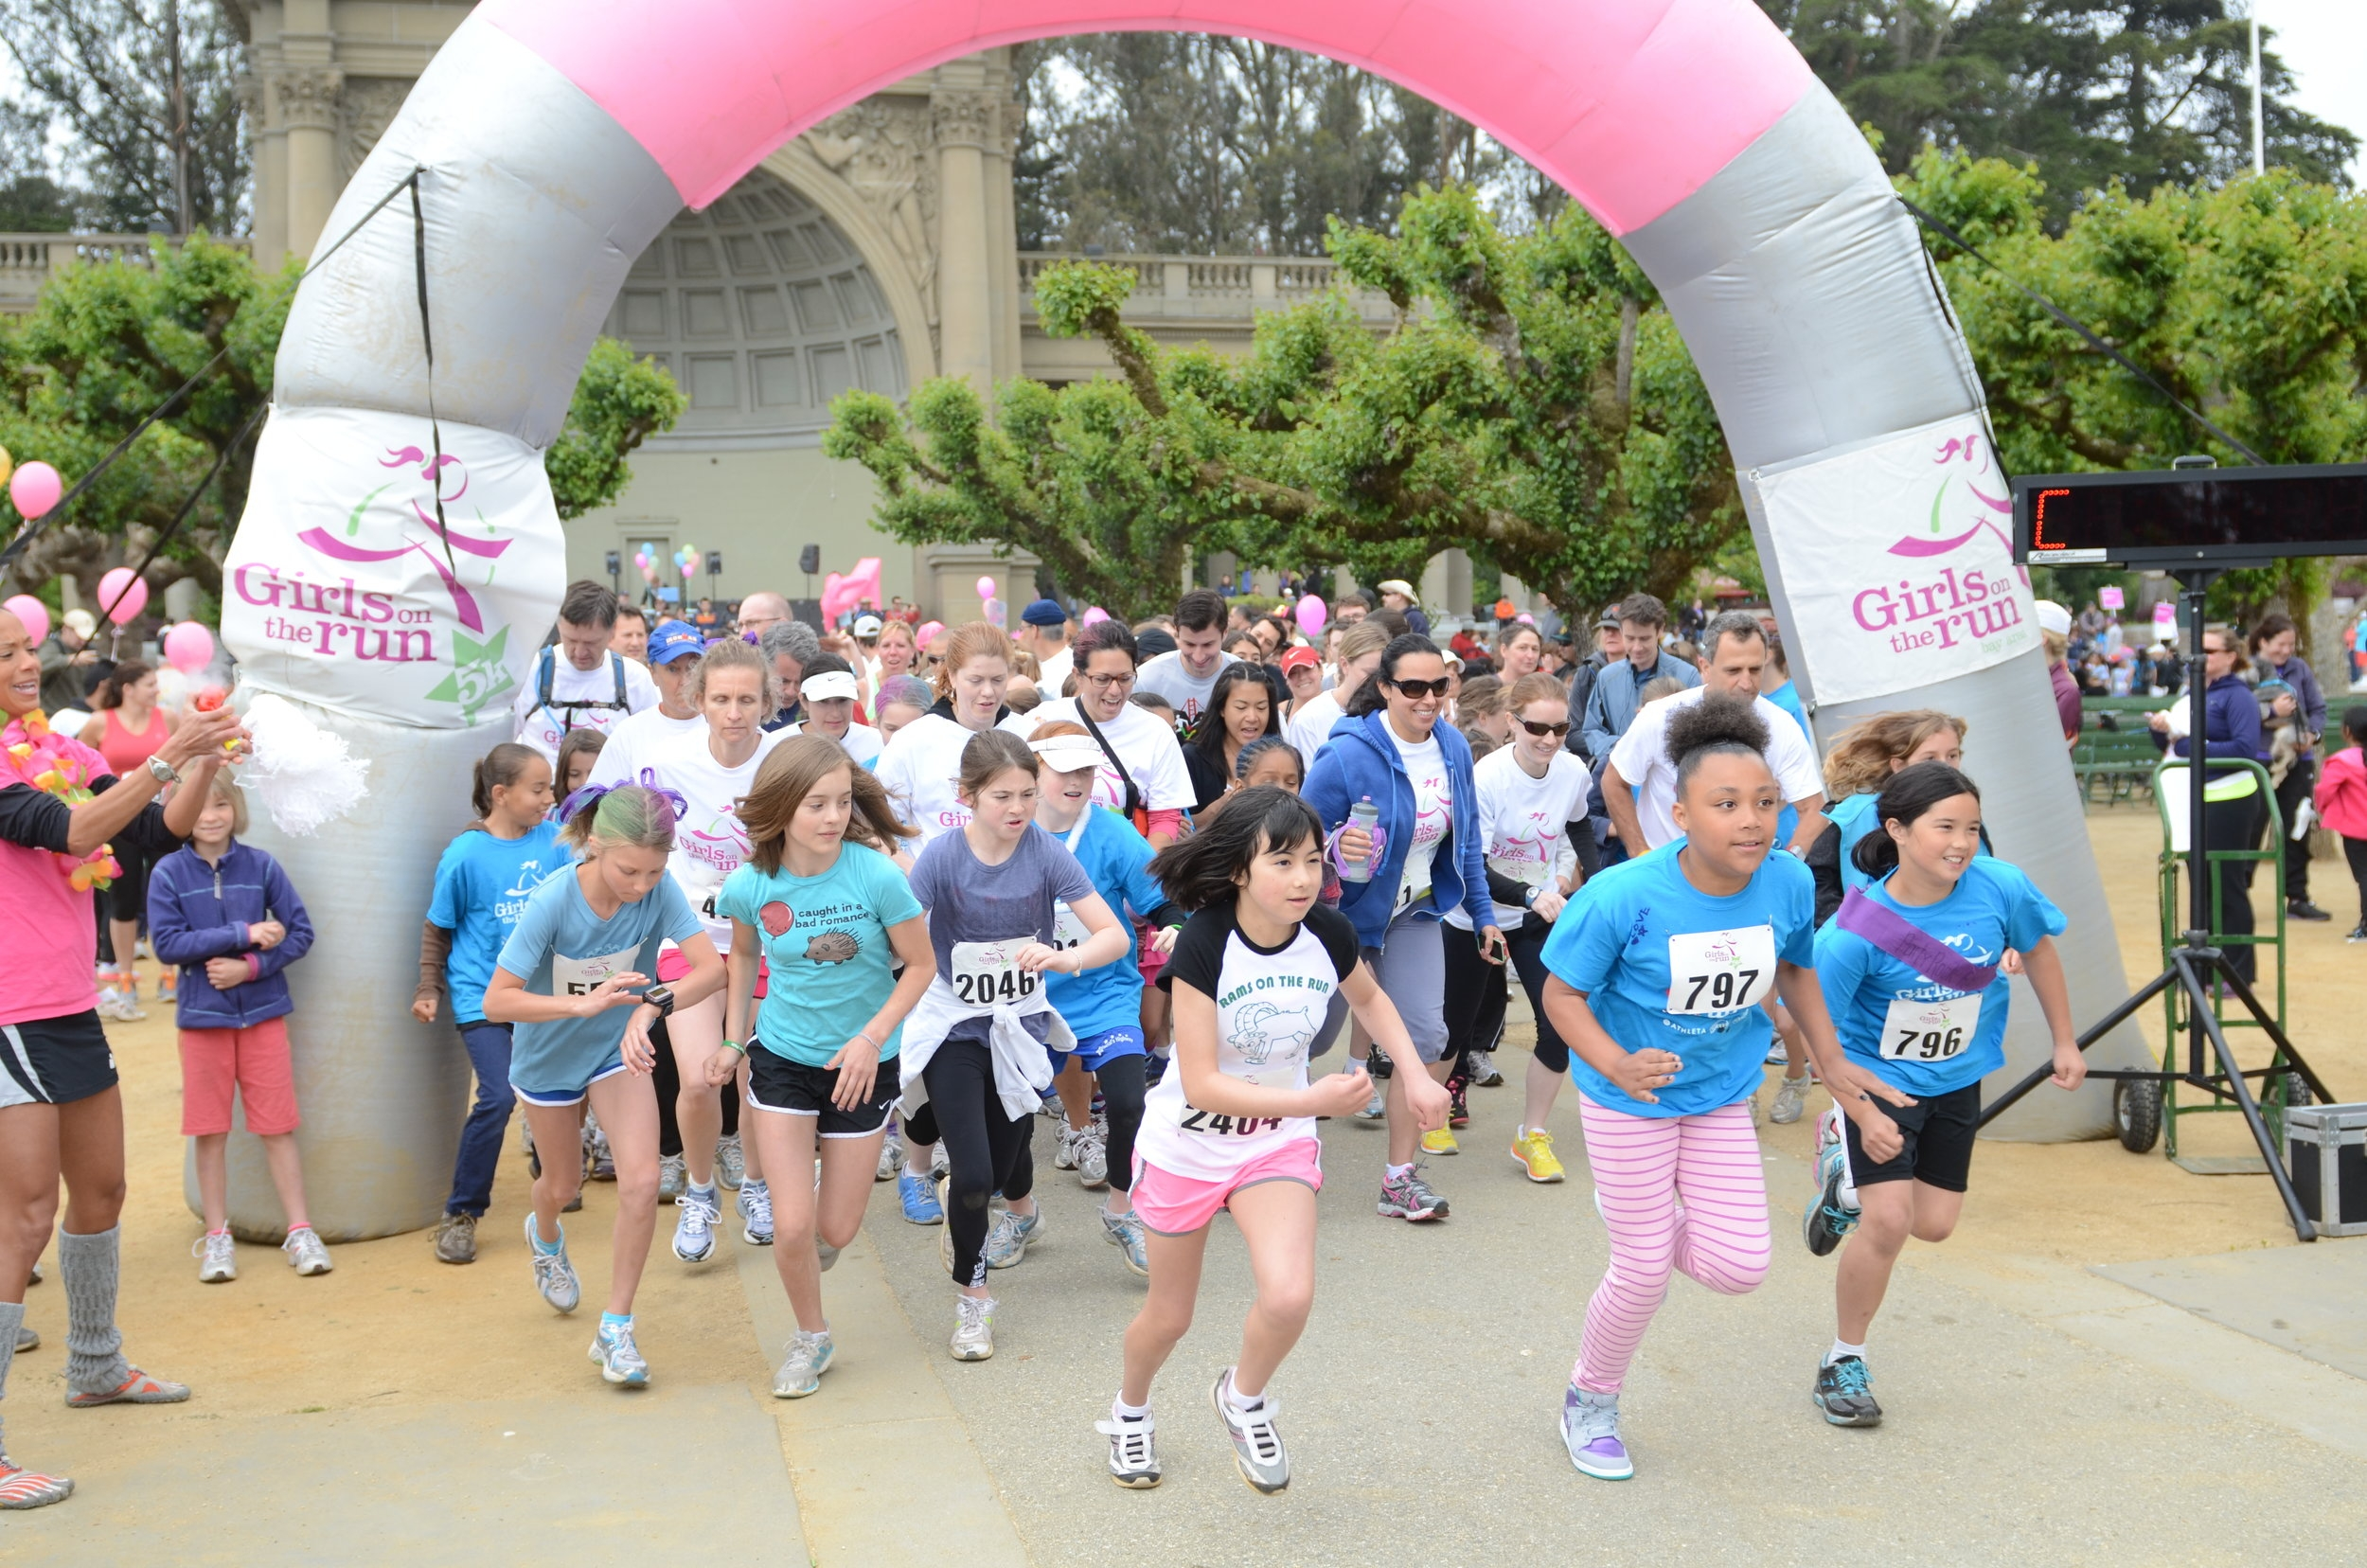 Girls on the Run Bay Area